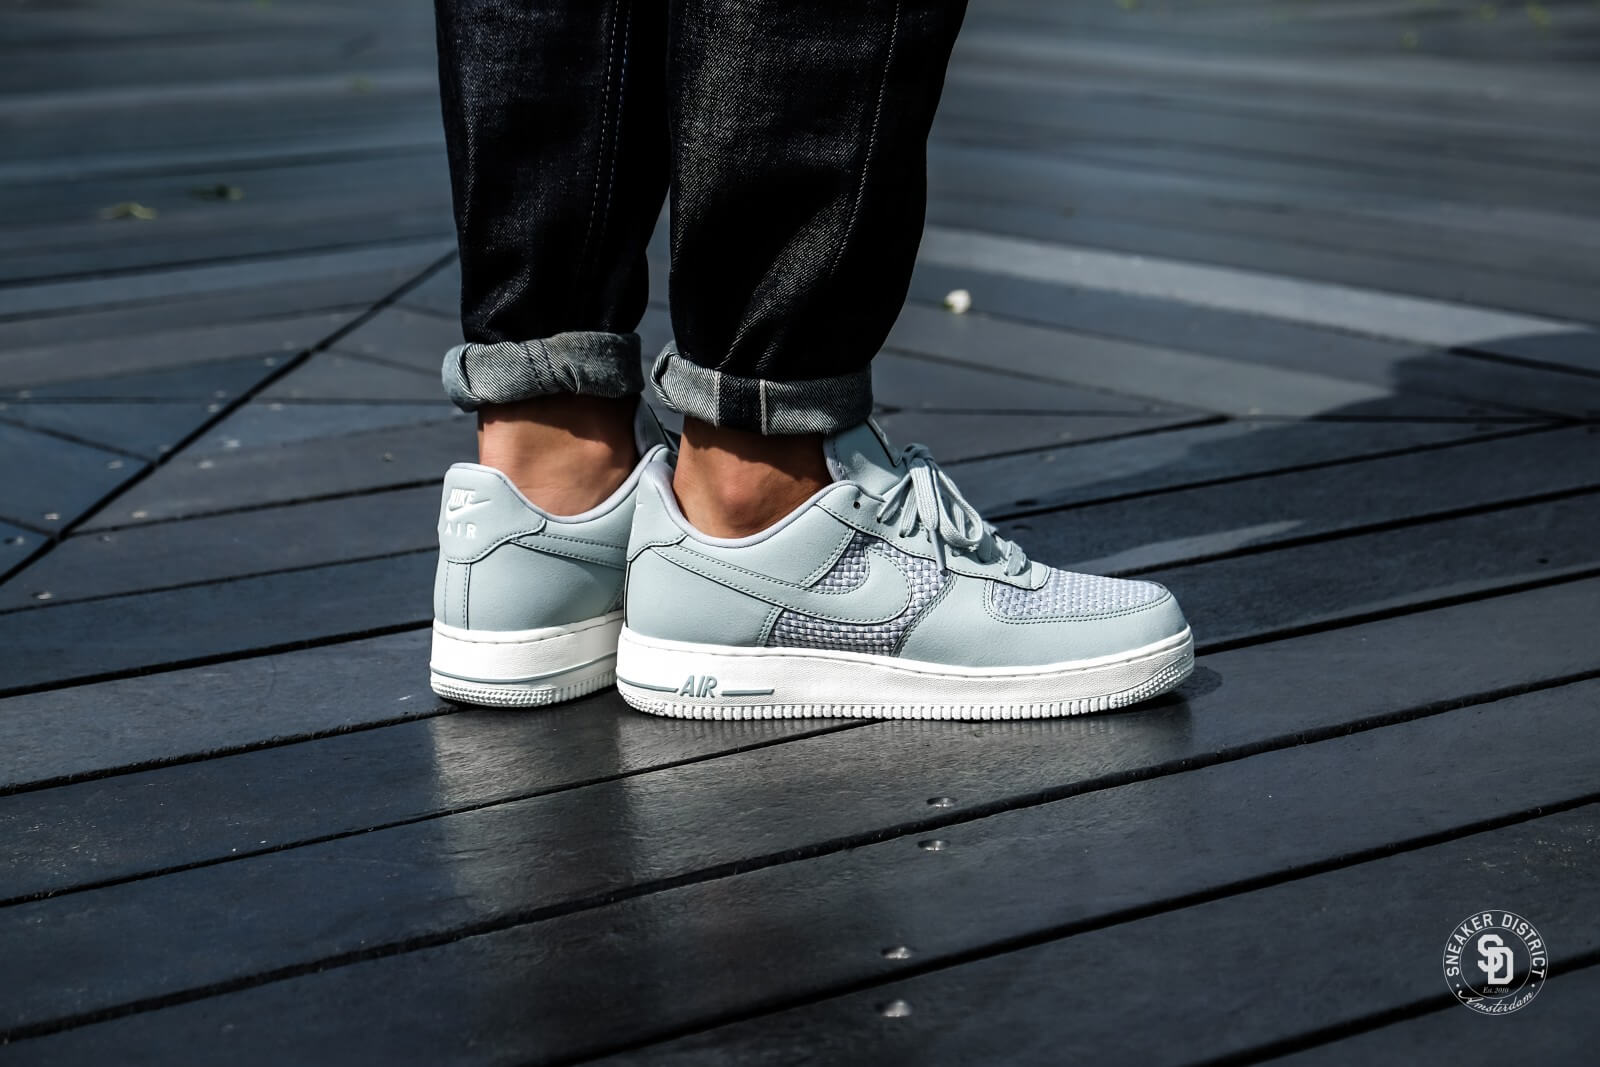 nike air force 1 pumice white